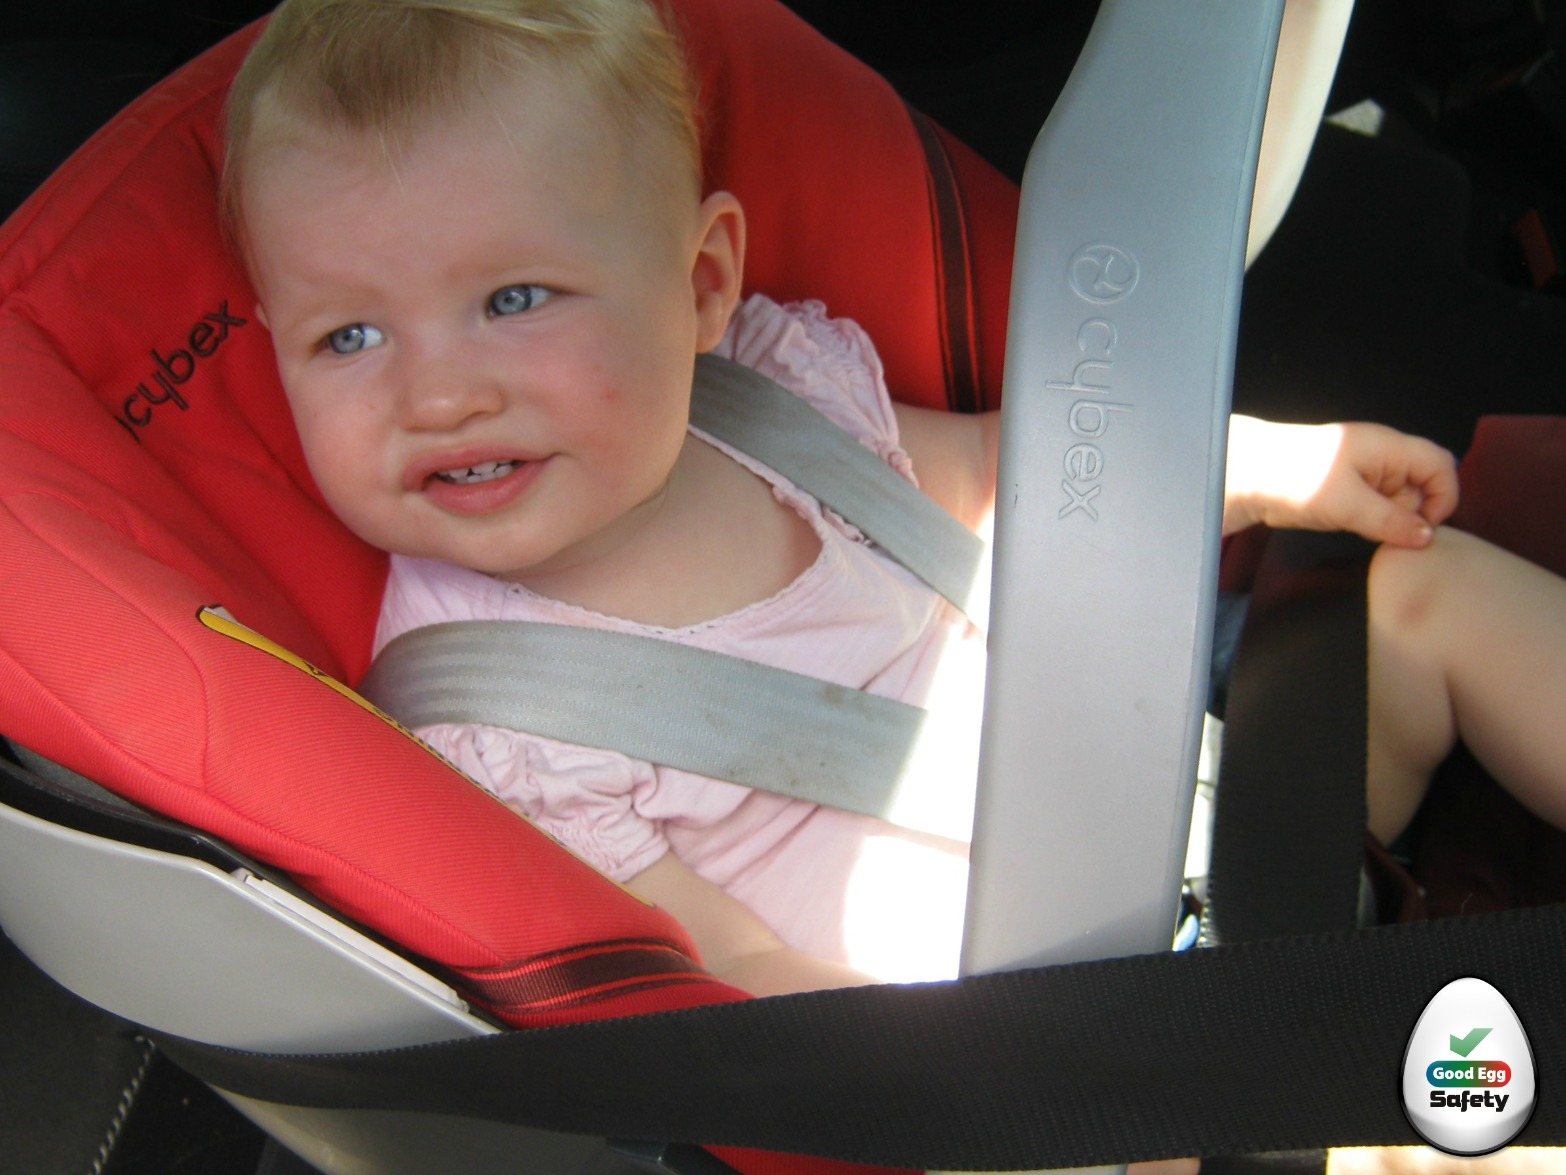 Stupendous When Is The Infant Car Seat Outgrown Good Egg Car Safety Evergreenethics Interior Chair Design Evergreenethicsorg